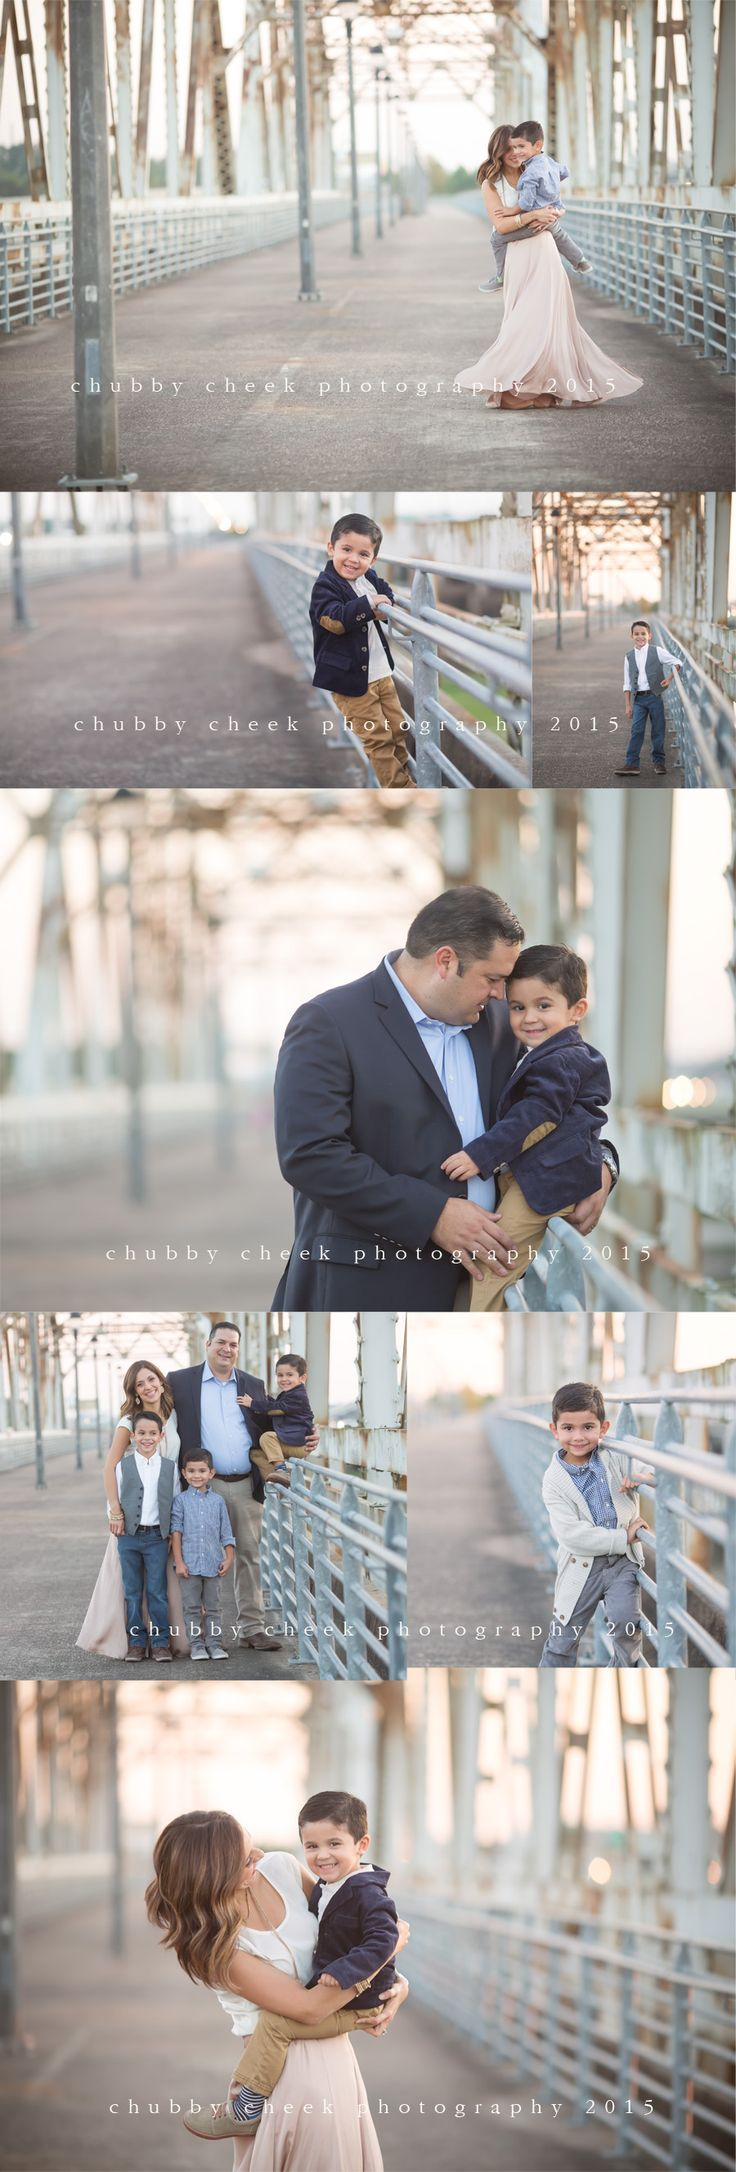 Oh the twirl…. chubby cheek photography family photographer